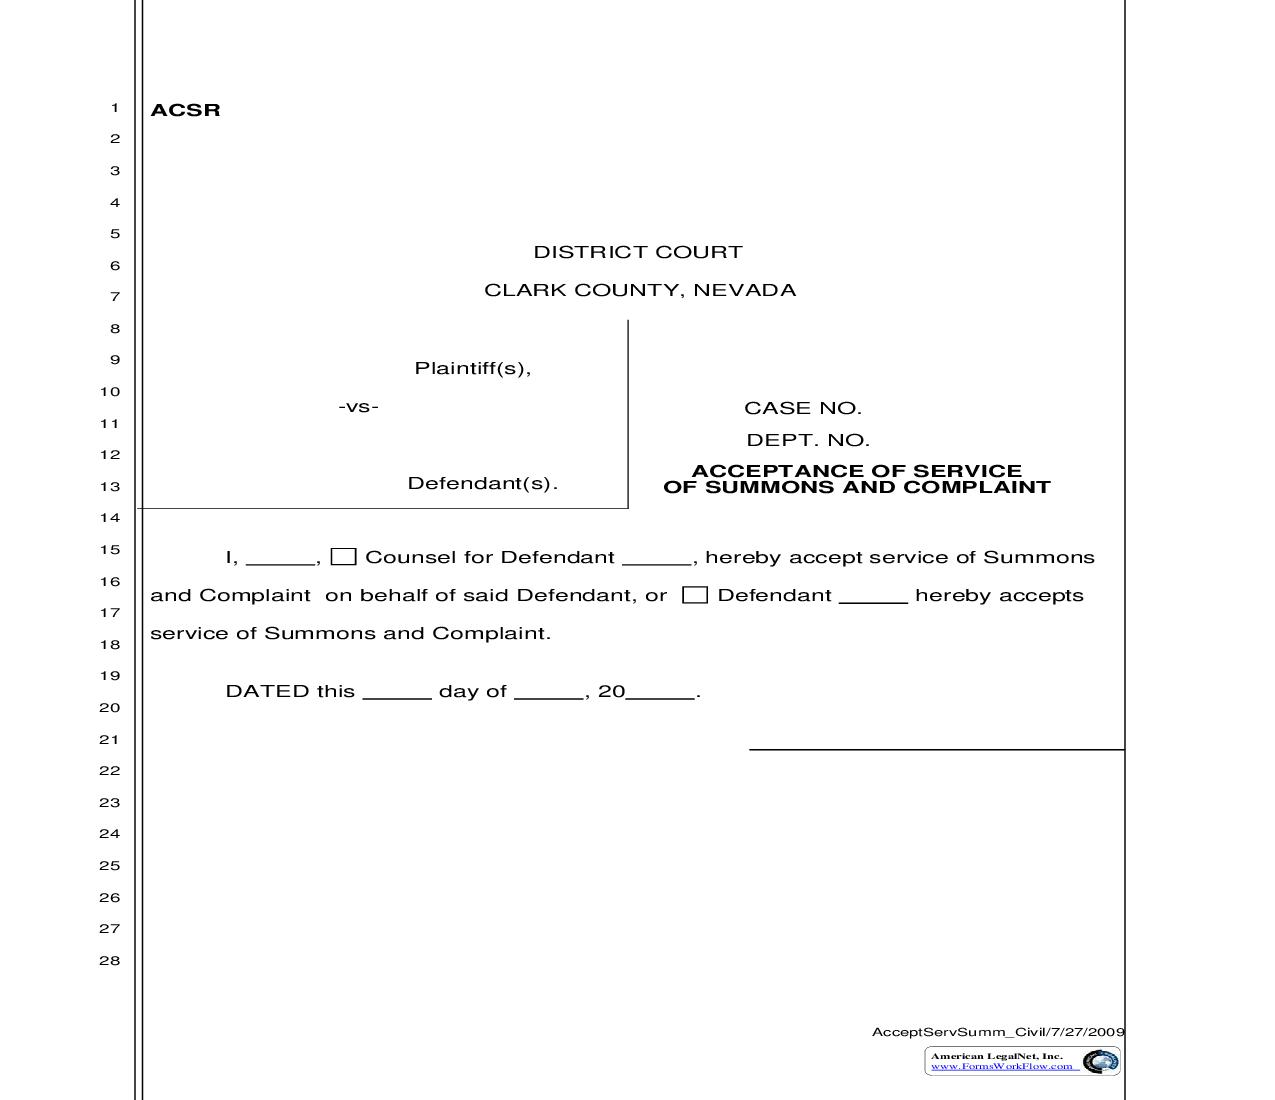 Acceptance Of Service Of Summons And Complaint {ACSR} | Pdf Fpdf Doc Docx | Nevada